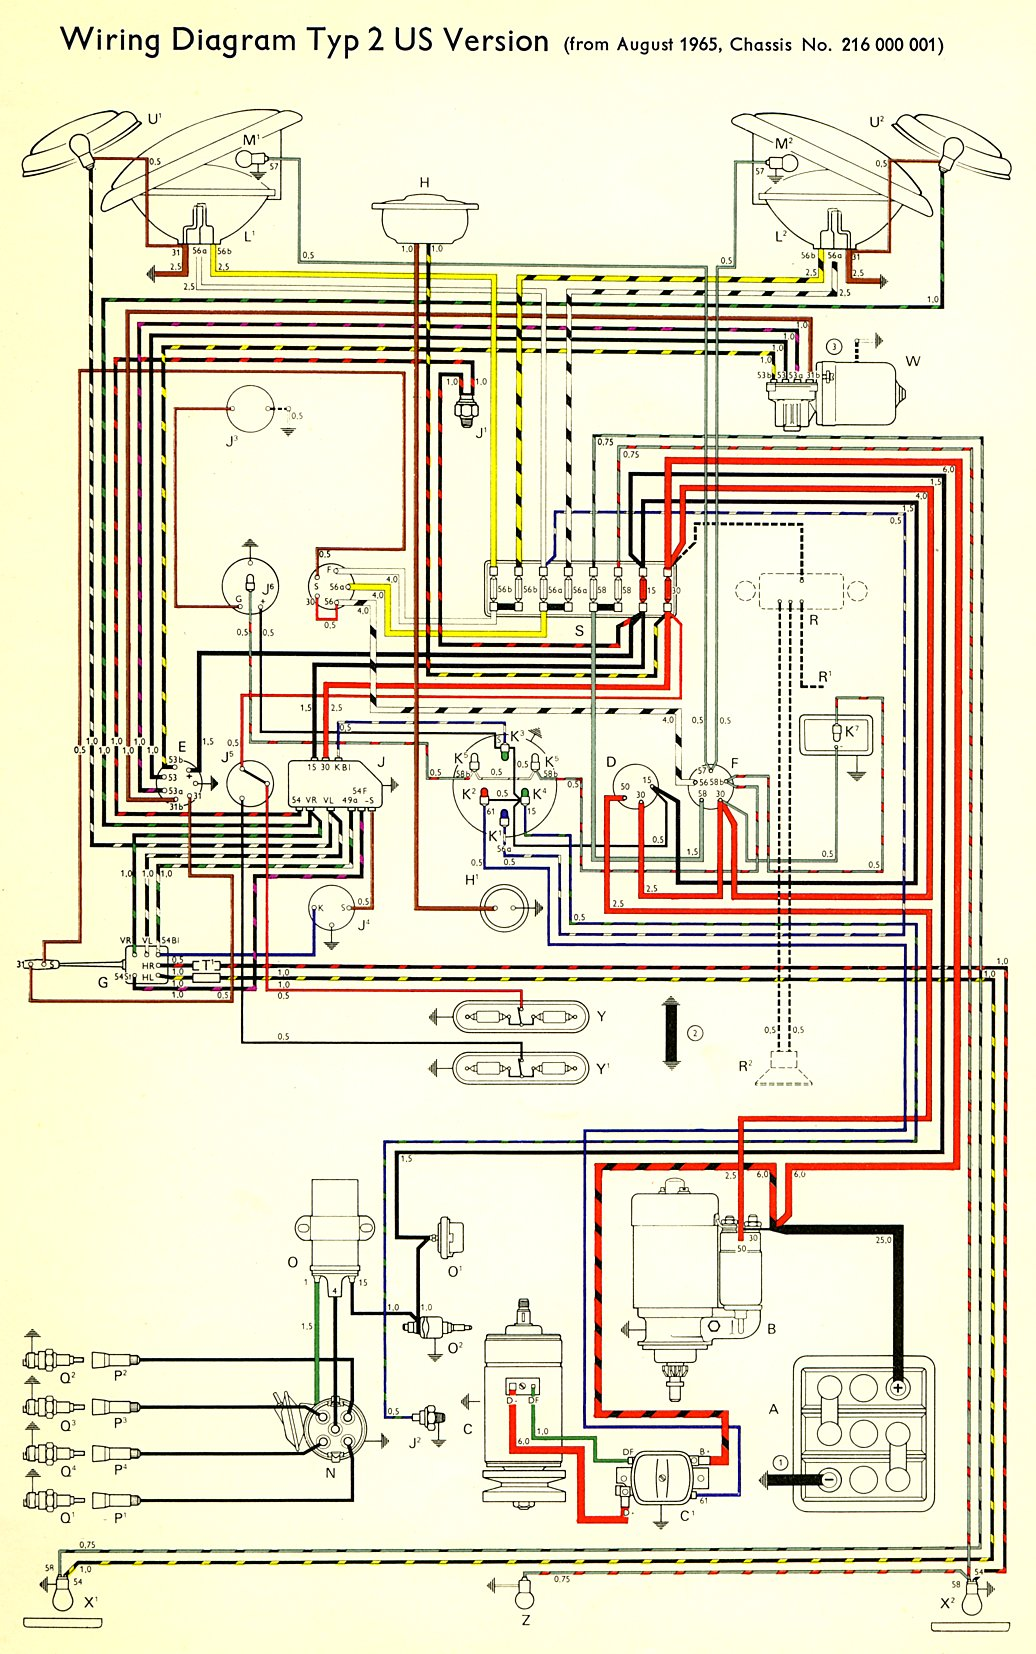 bus_66_USA 1966 bus wiring diagram (usa) thegoldenbug com vw wiring diagrams at cita.asia